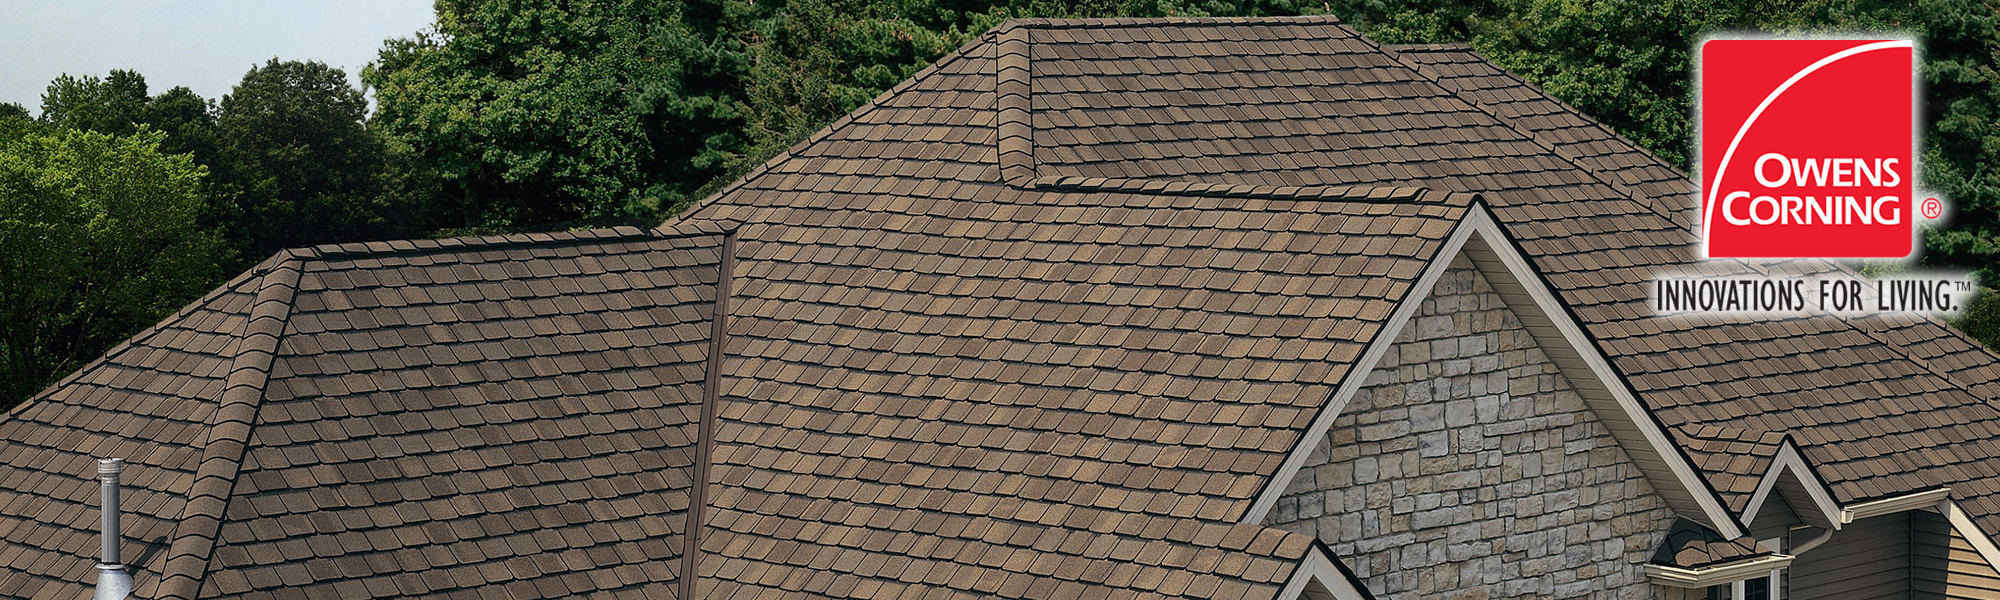 Rooftop Roofing and Remodeling, LLC Images